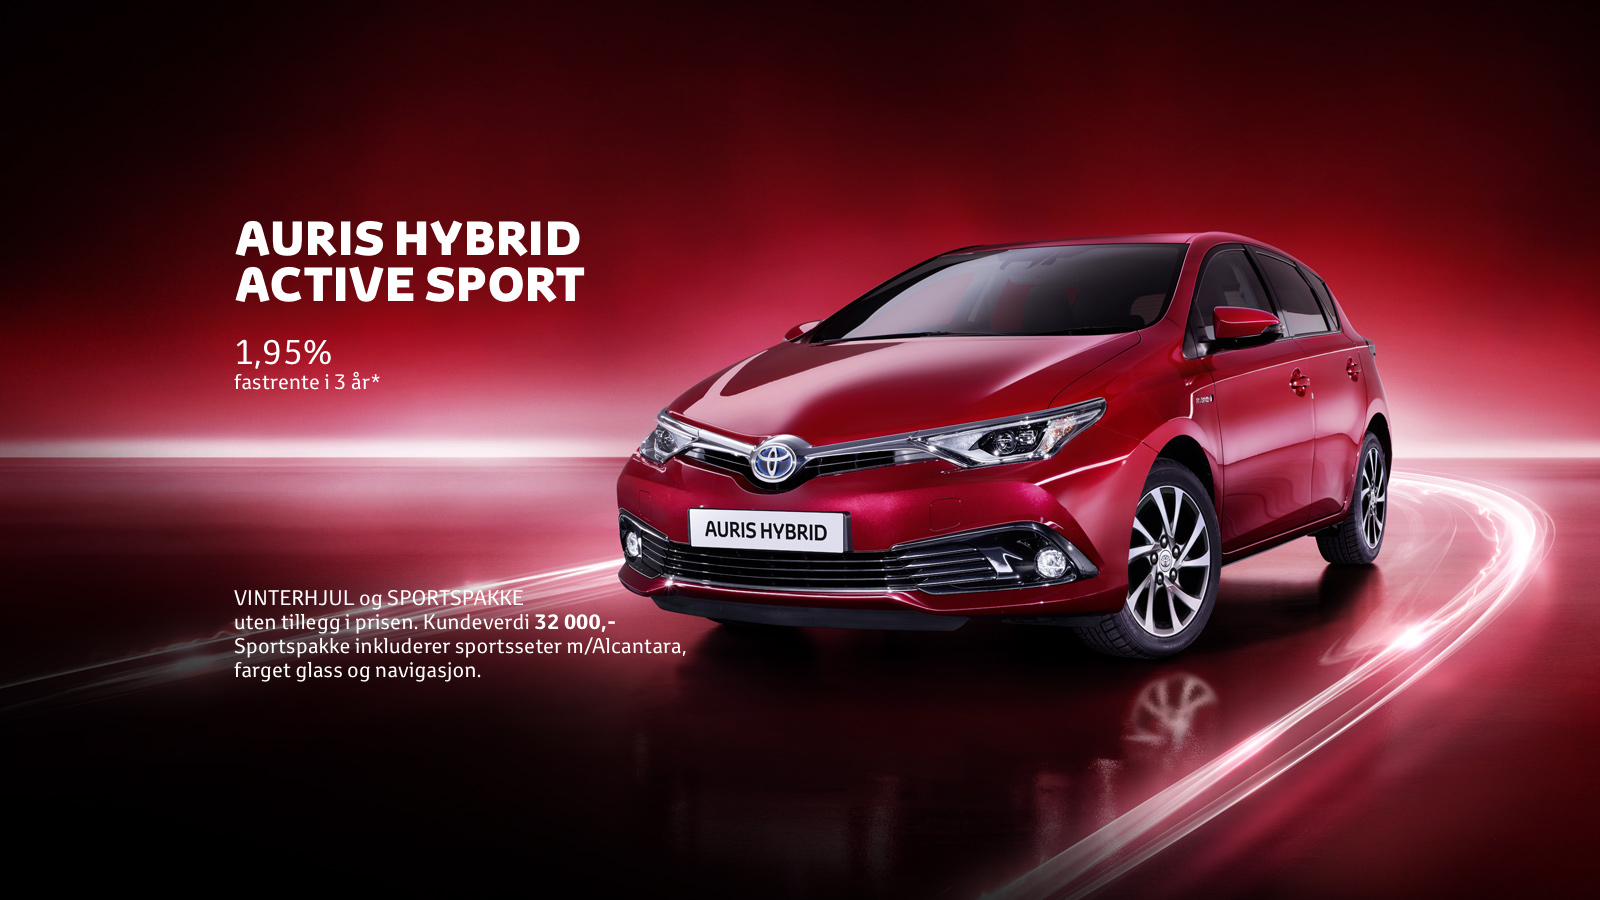 Auris Hybrid Active Sport - Privatleie 2 150,- /md.